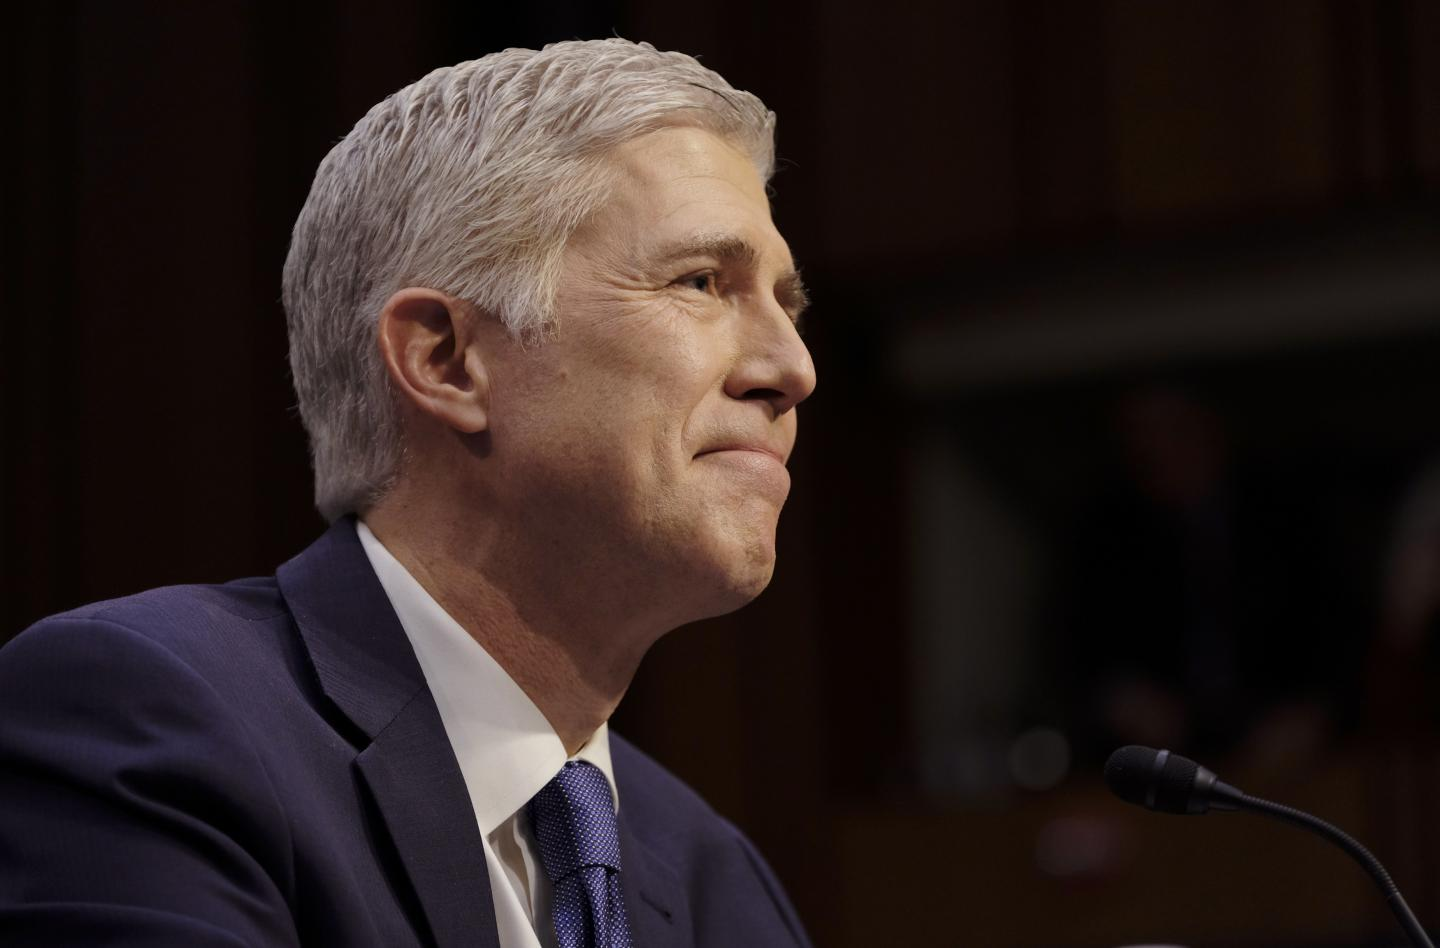 Why the NRA is betting big on Trump Supreme Court nominee Neil Gorsuch https://t.co/xie4tHfajv https://t.co/rdynSrwU48